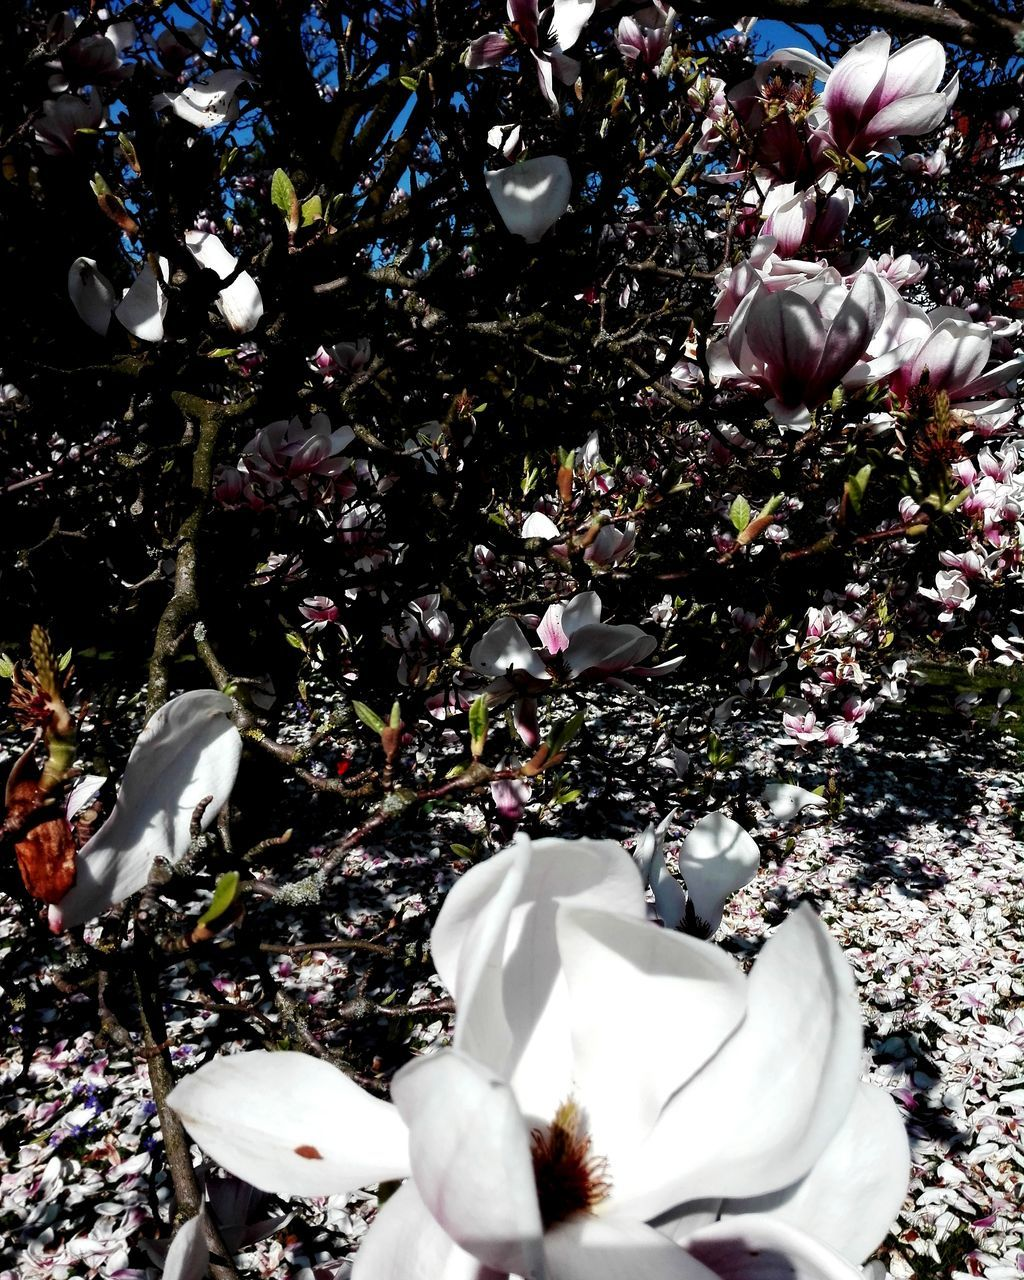 HIGH ANGLE VIEW OF WHITE FLOWERING PLANTS ON TREES